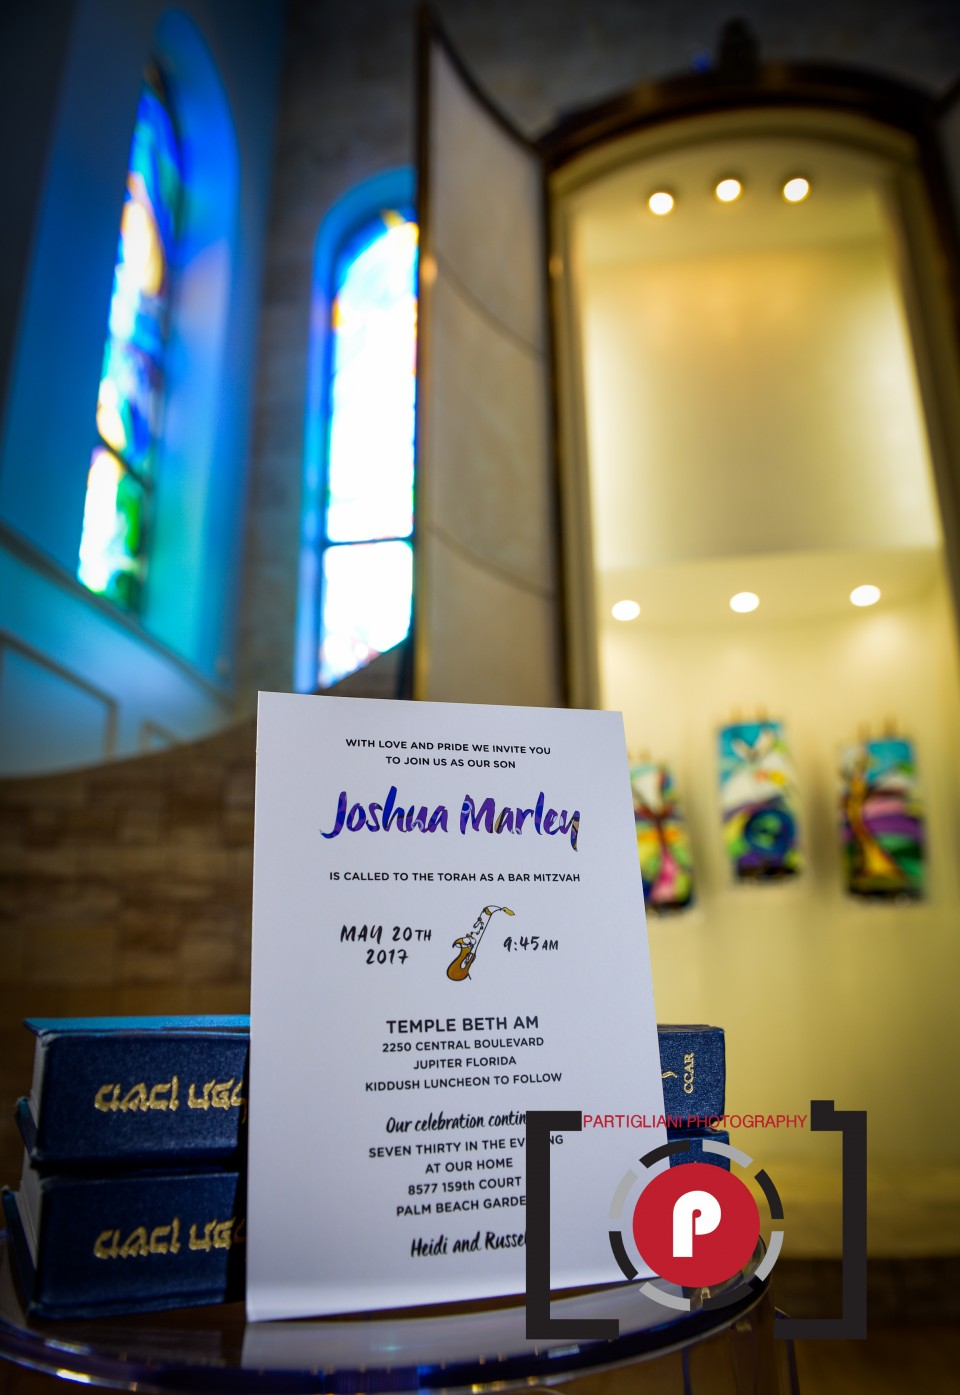 TEMPLE BETH AM, JUPITER, PARTIGLIANI PHOTOGRAPHY, JOSHUA MARLEY BAR MITZVAH-1